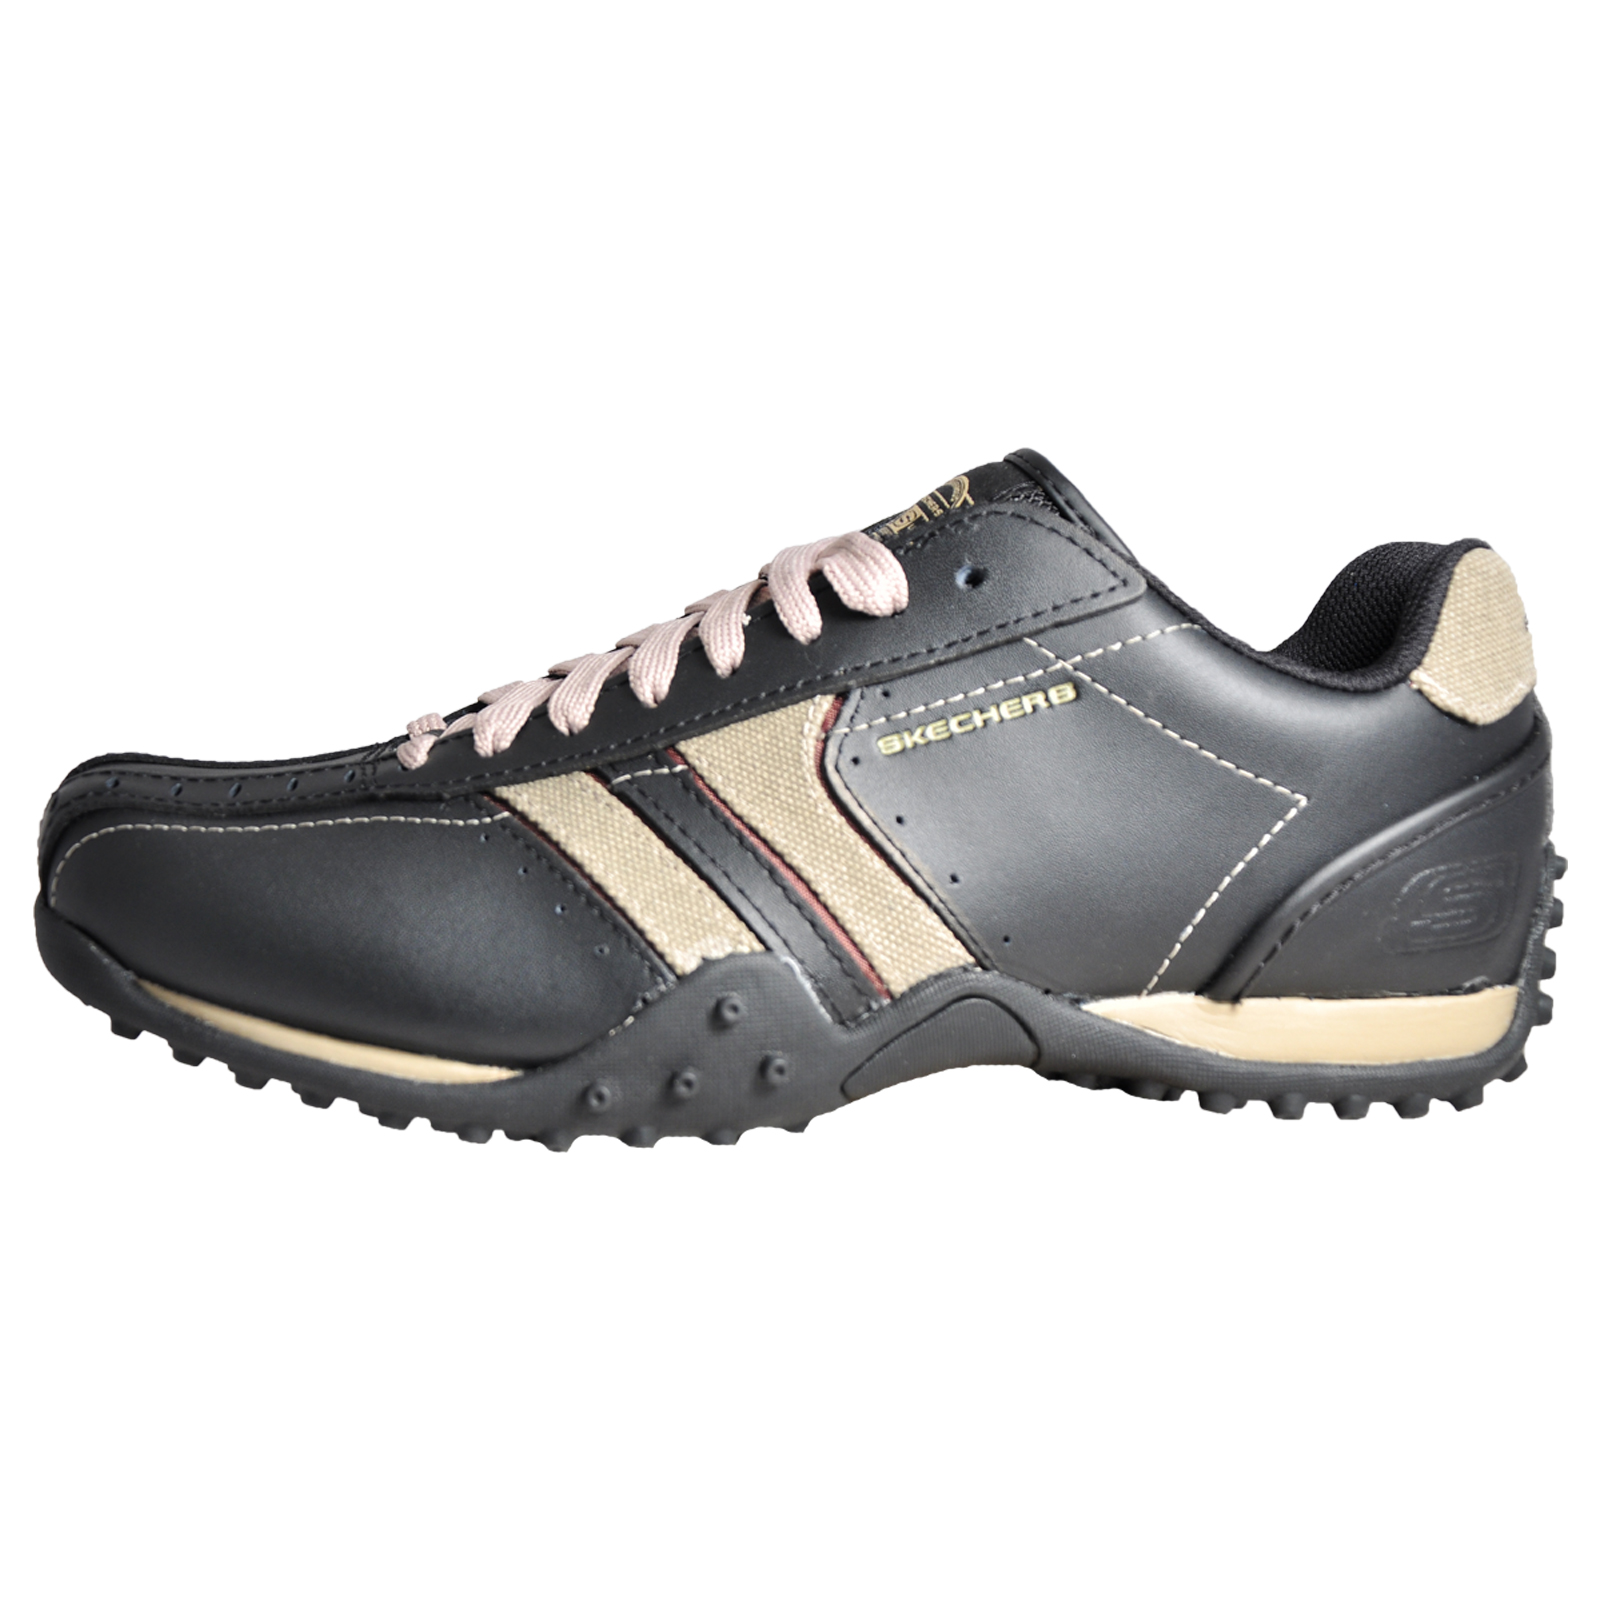 e9fdf7a20d80 Skechers Urban Track Forward Men s Casual Leather Shoes Black